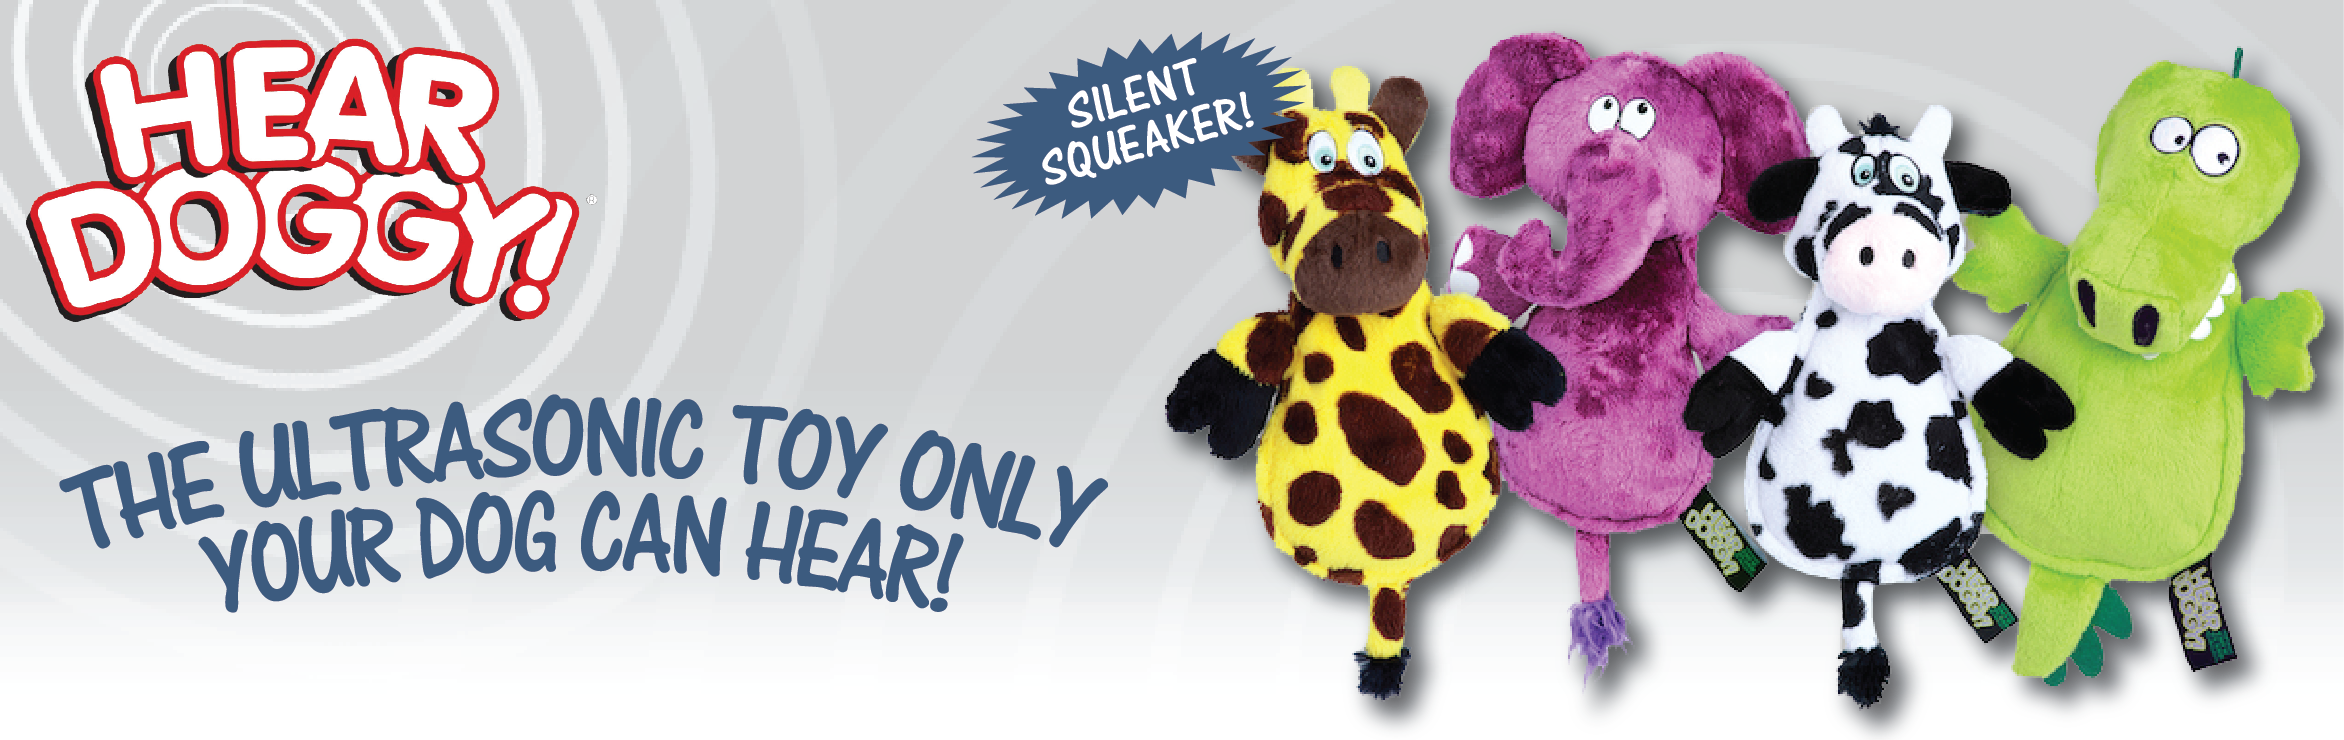 Hear Doggy squeakless toys